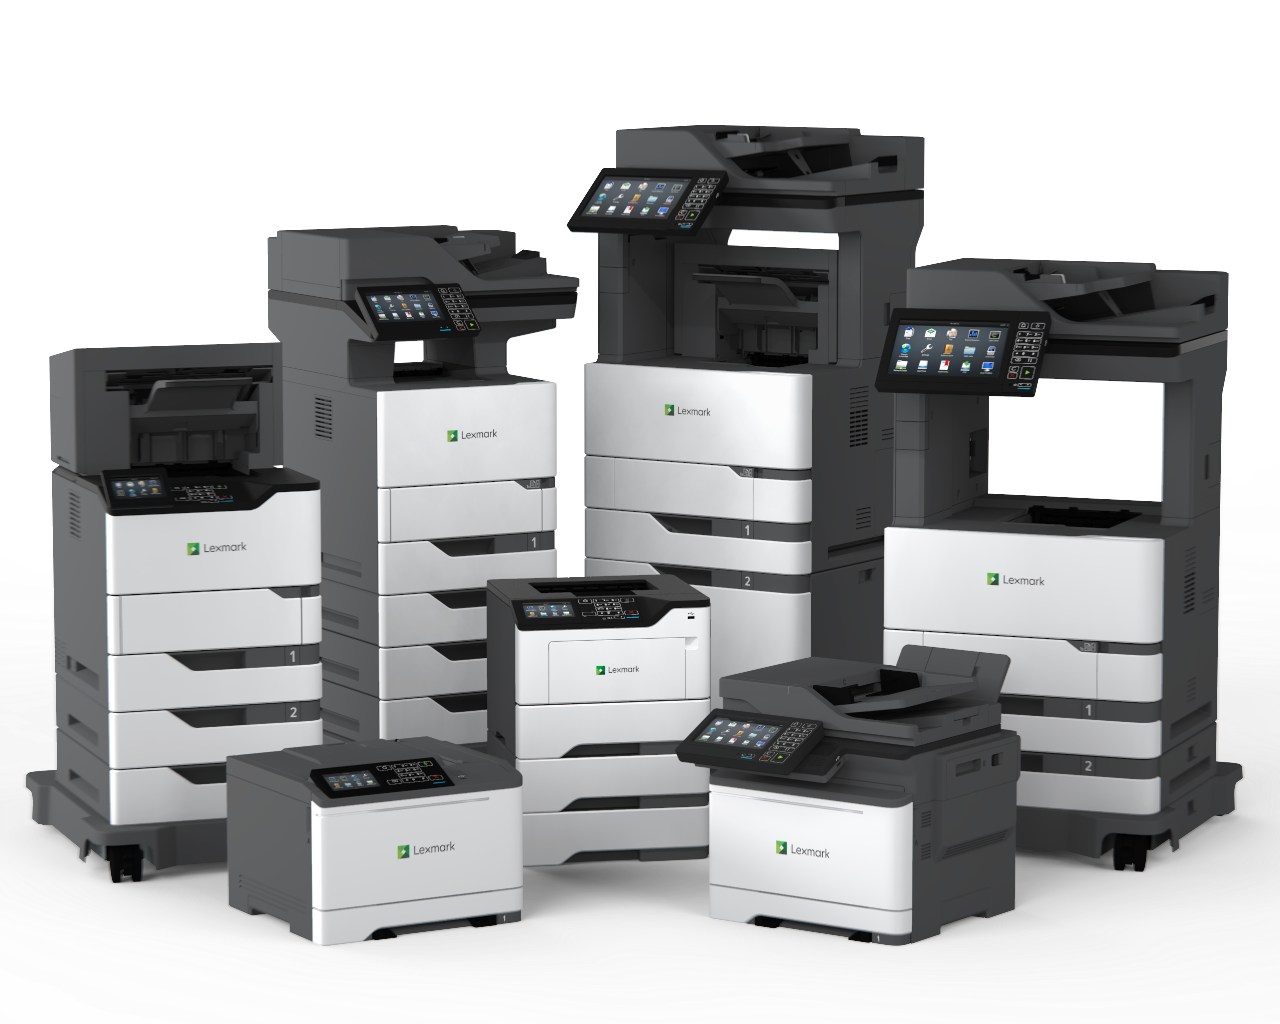 Lexmark recognized as 2017 BLI Color Printer/MFP Line of the Year